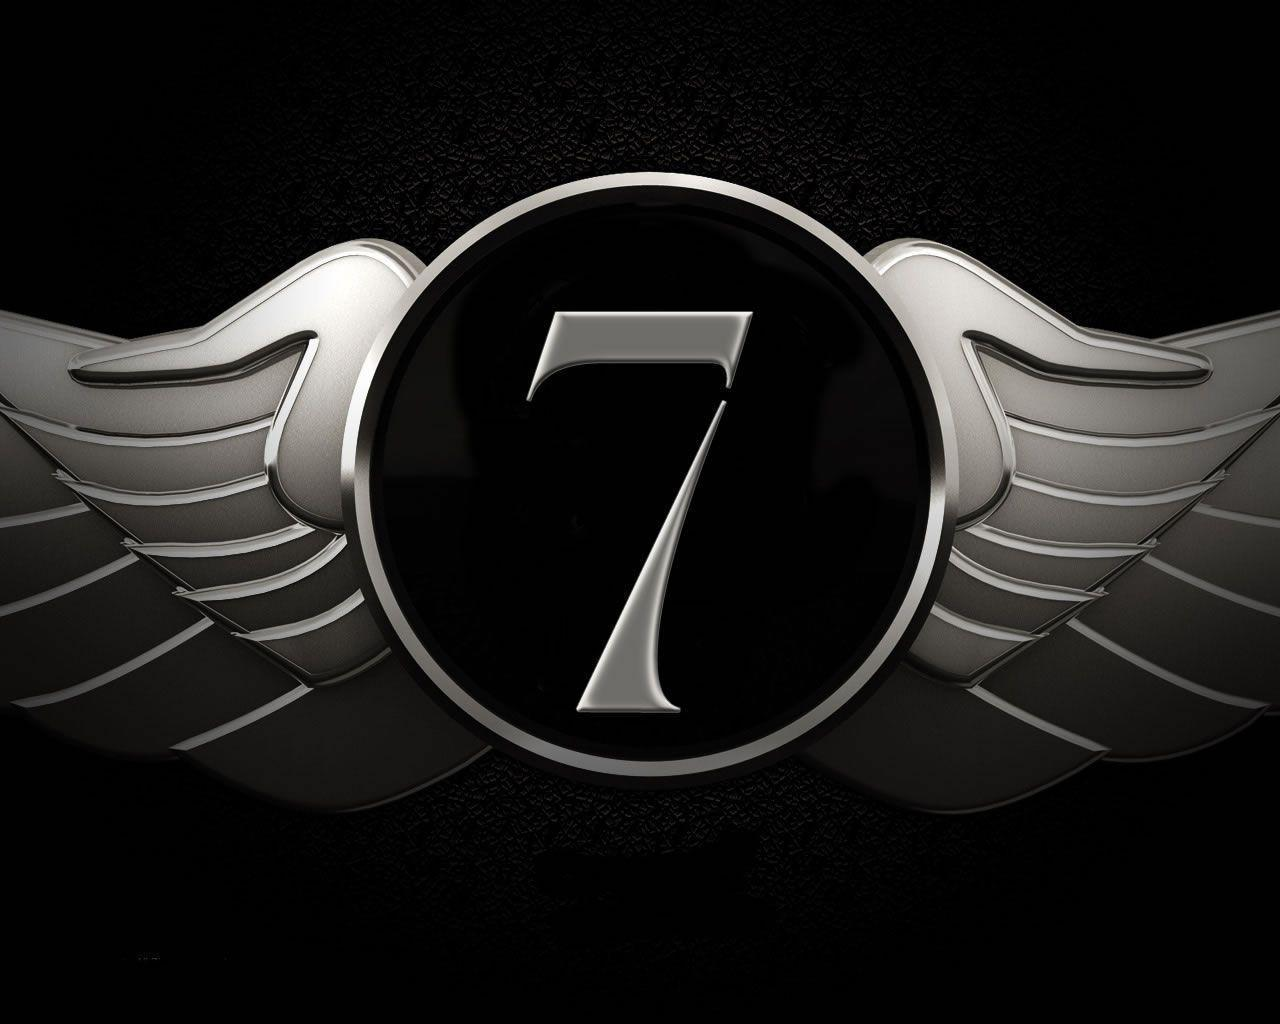 Number 7 Wallpapers